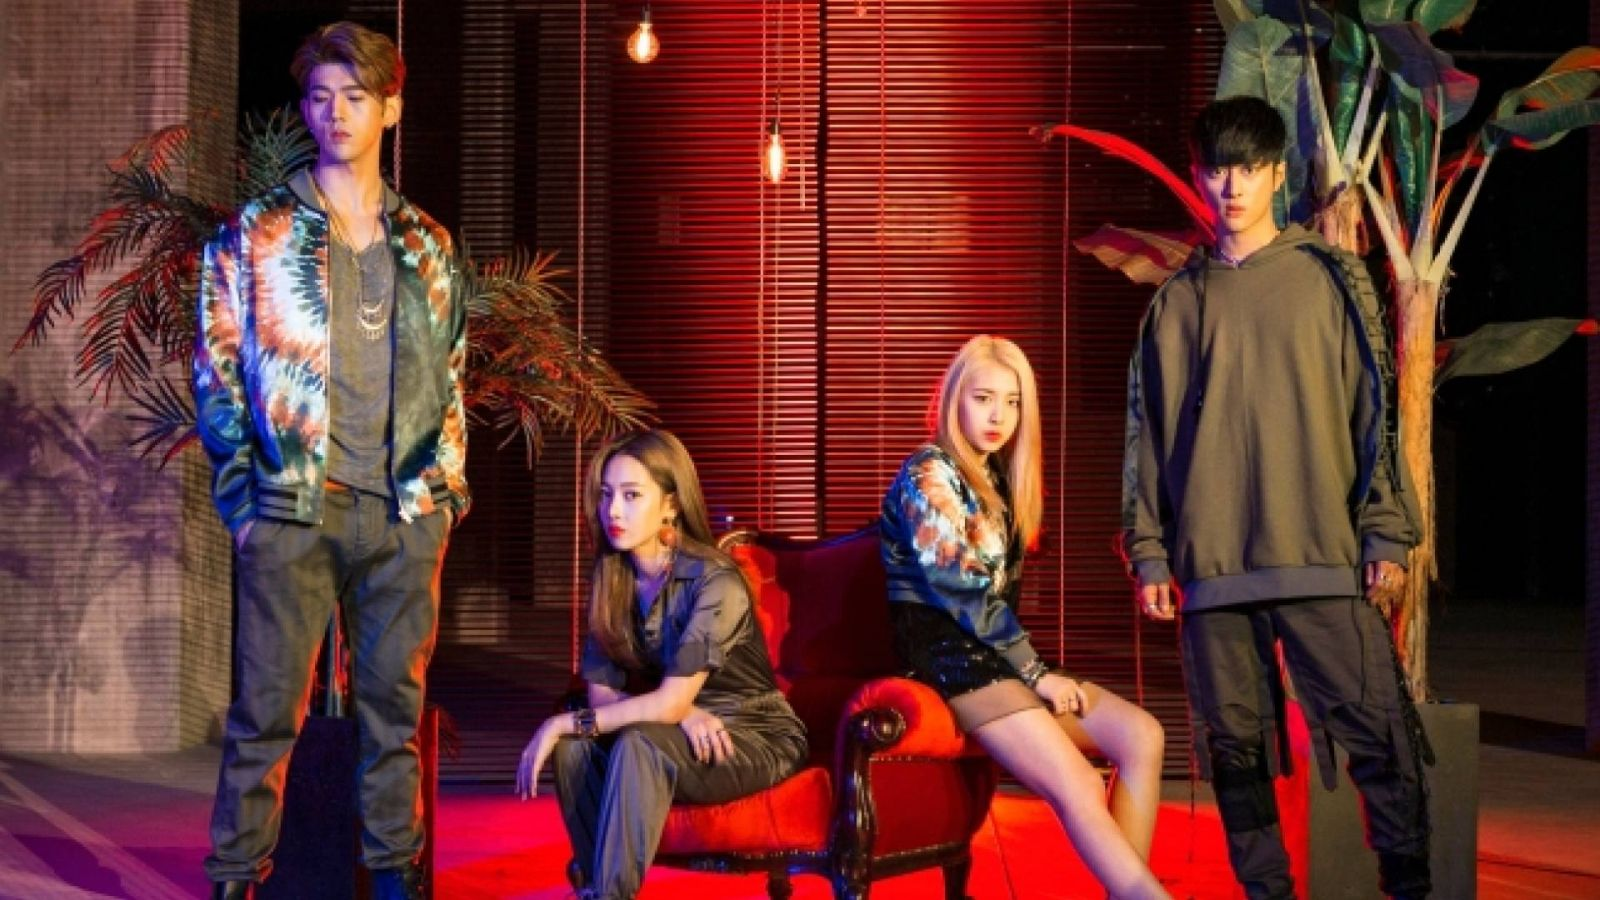 KARD © KARD. All Rights Reserved.